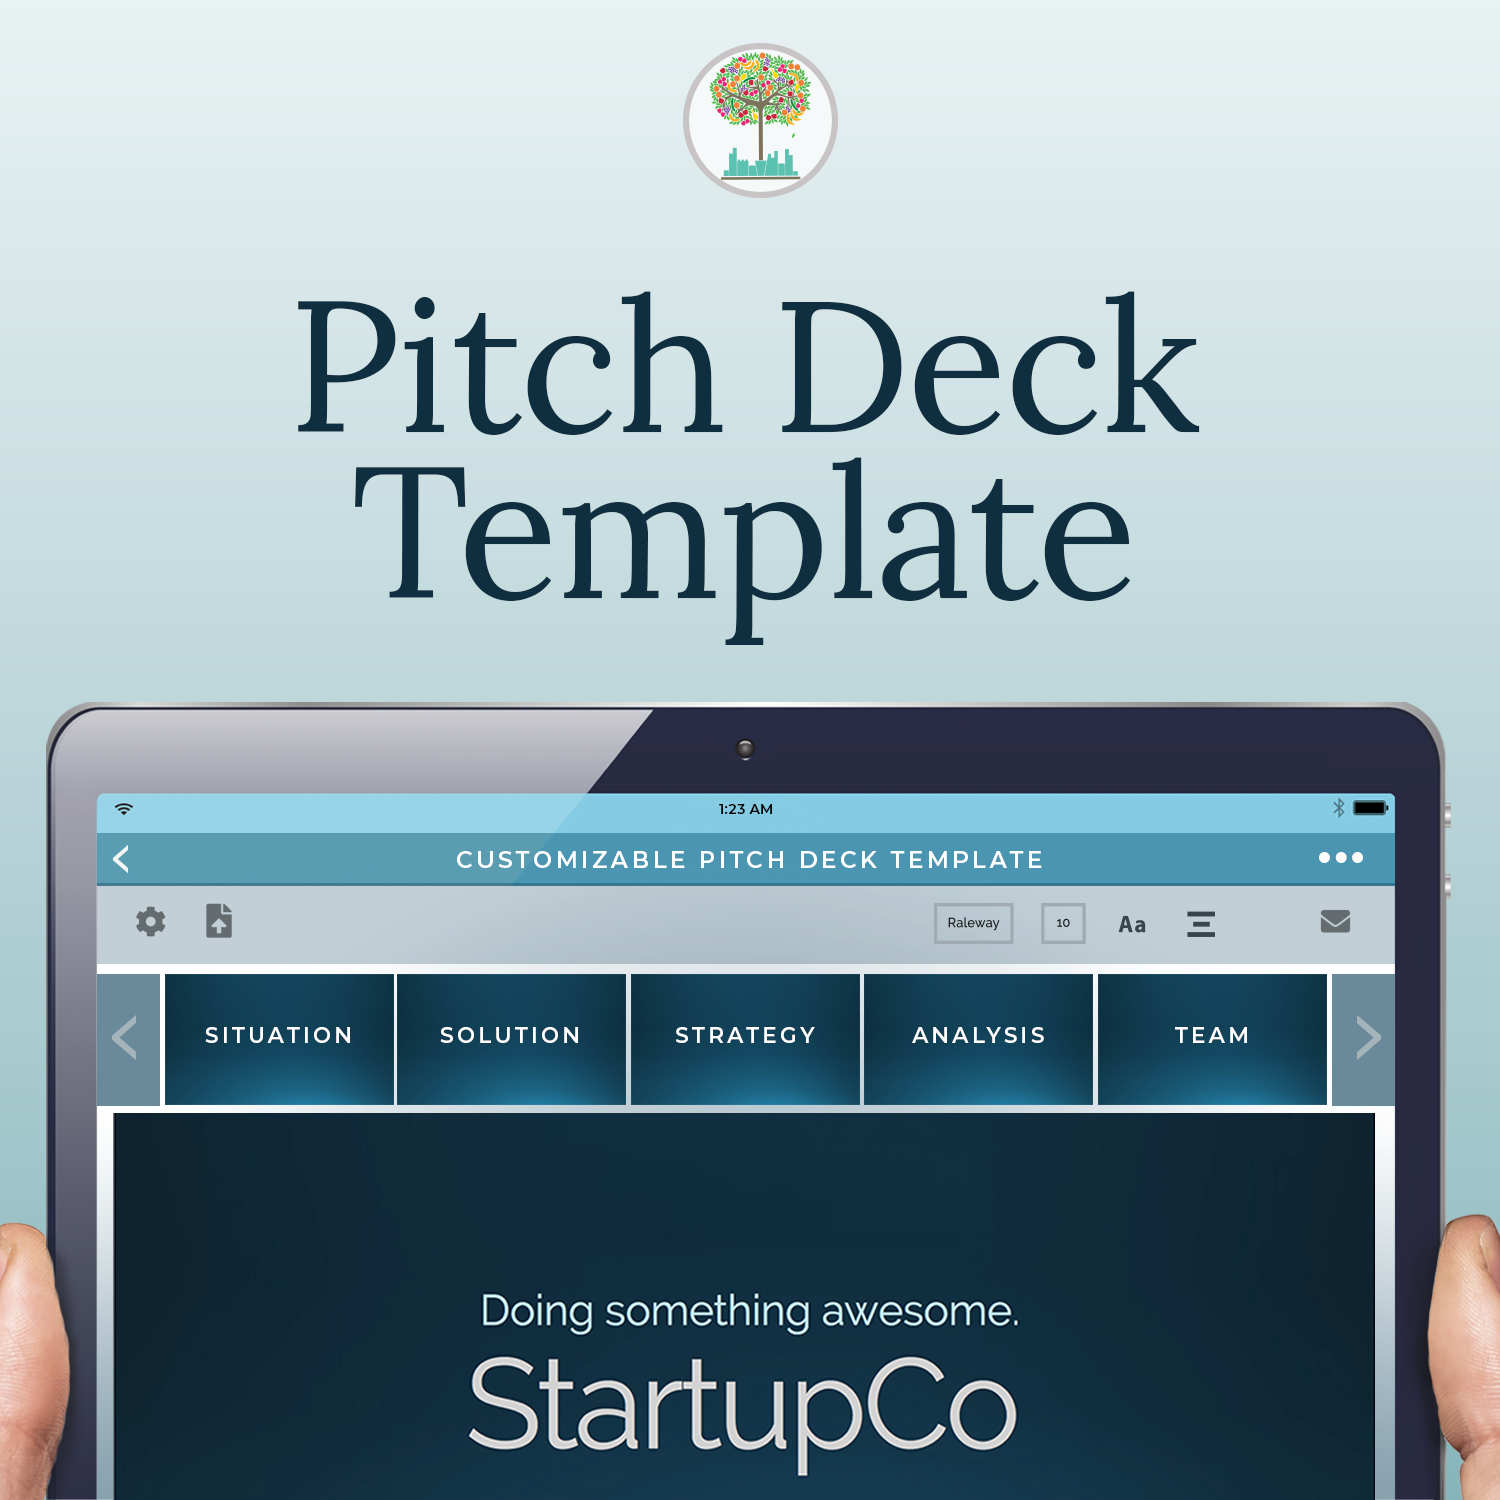 Pitch deck template creatorsk building creatively in the city pitch deck template flashek Image collections